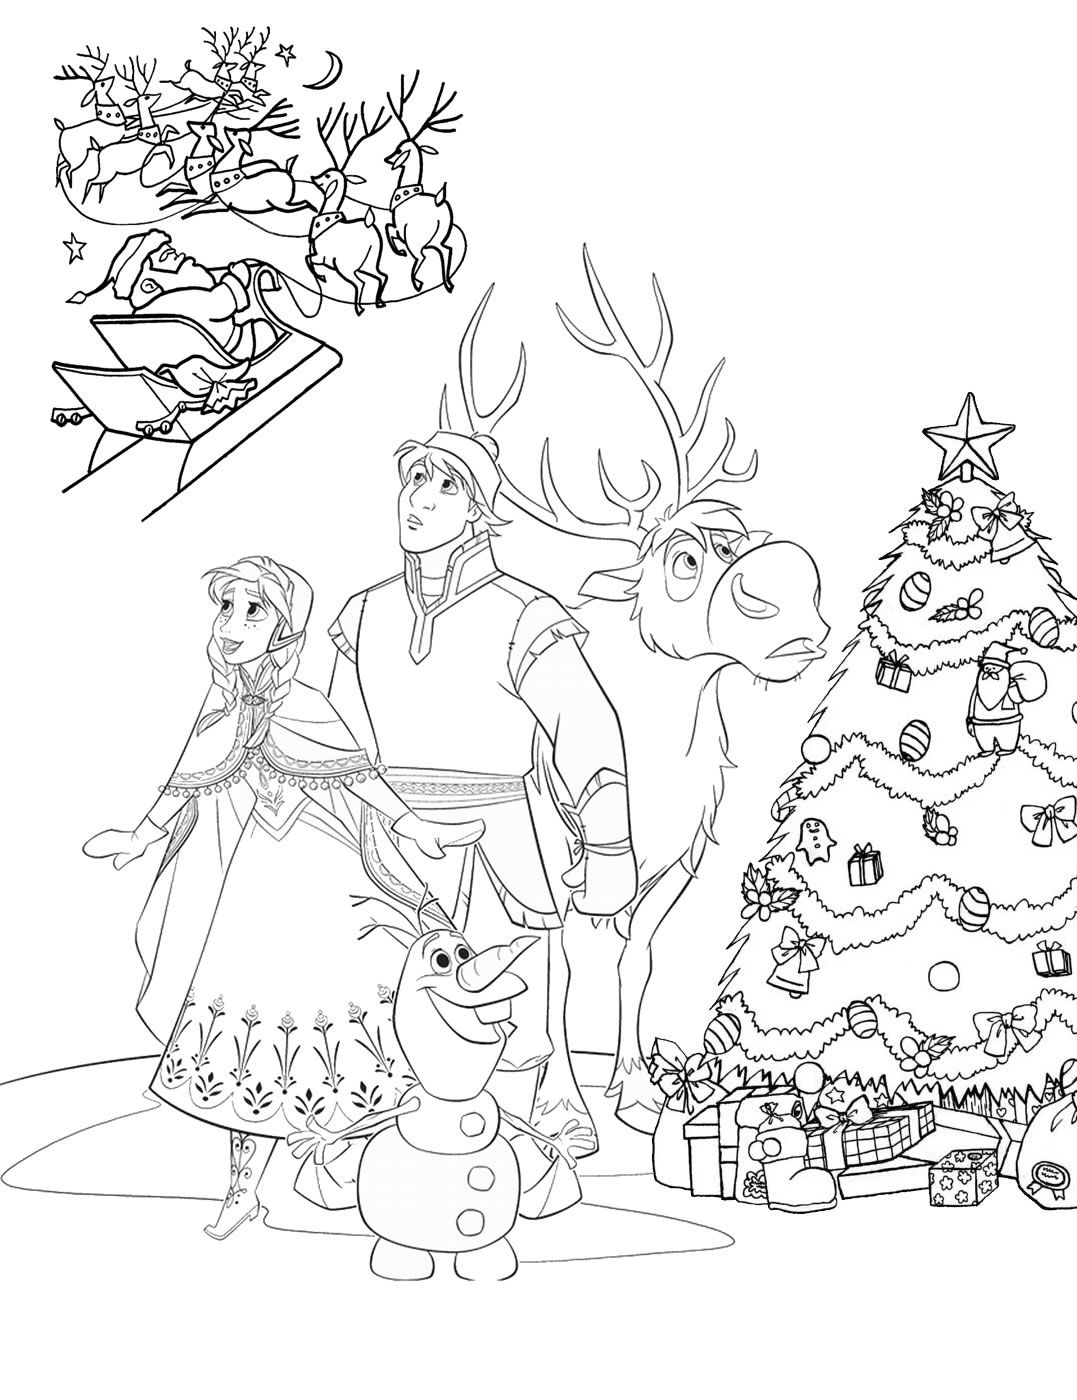 Frozen Christmas Coloring Pages Elsa Coloring Pages Christmas Coloring Pages Printable Christmas Coloring Pages